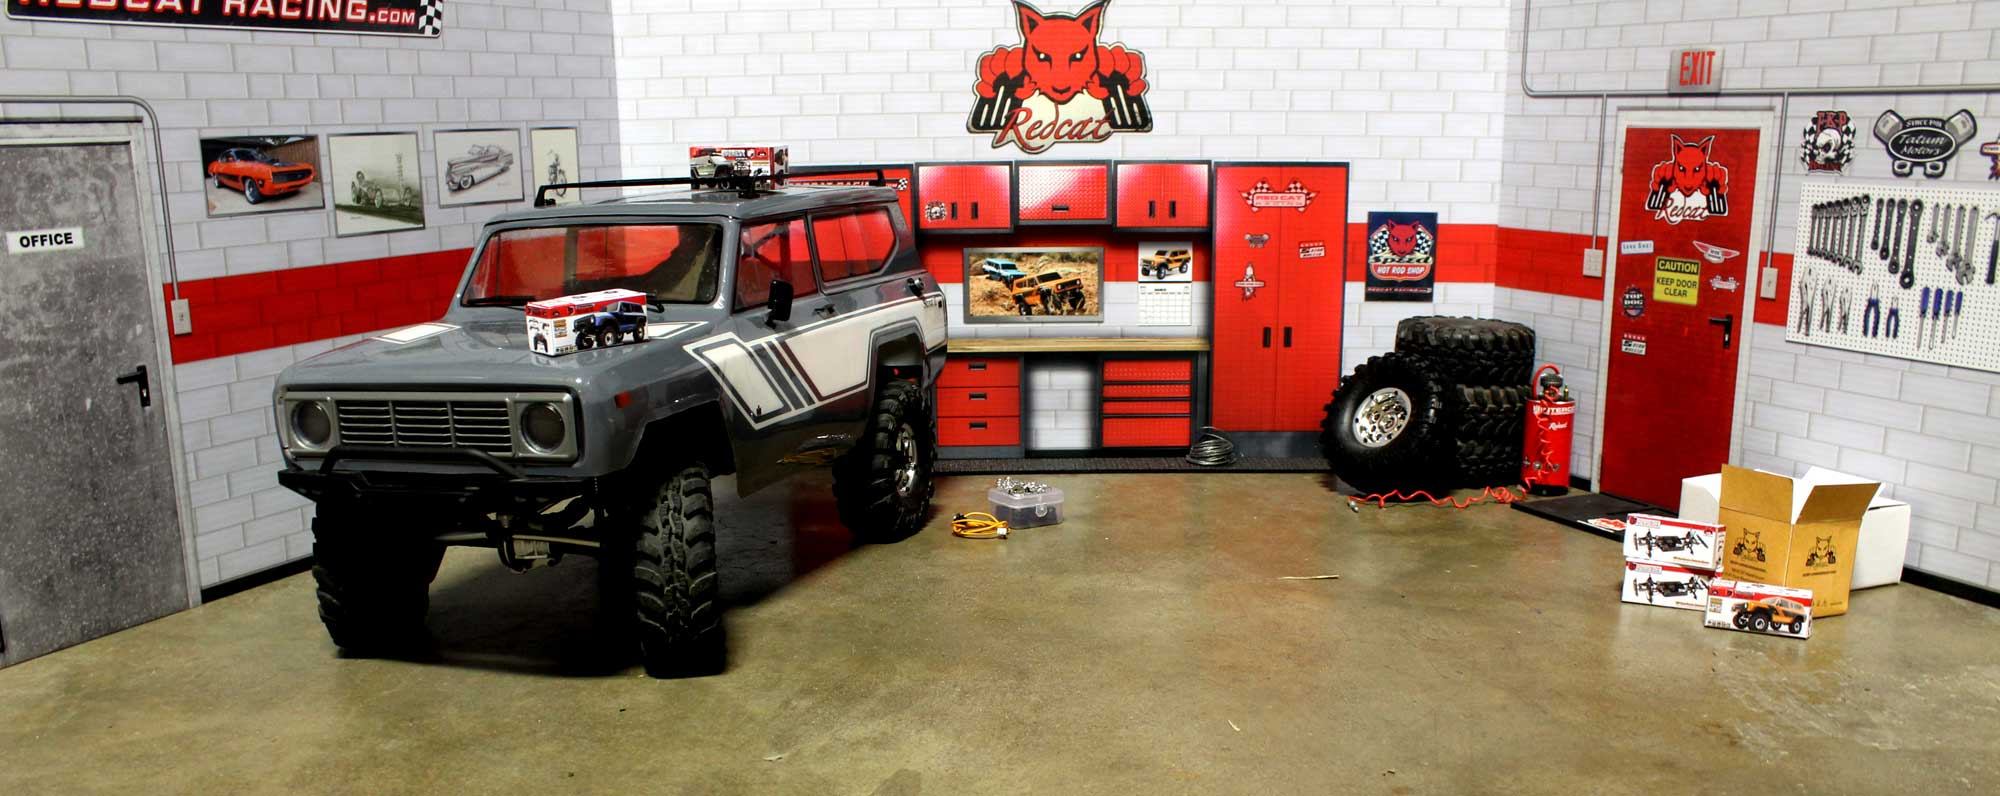 Accessories For Garage Redcat Racing Offers Up Free Papercraft Scale Accessories For Your